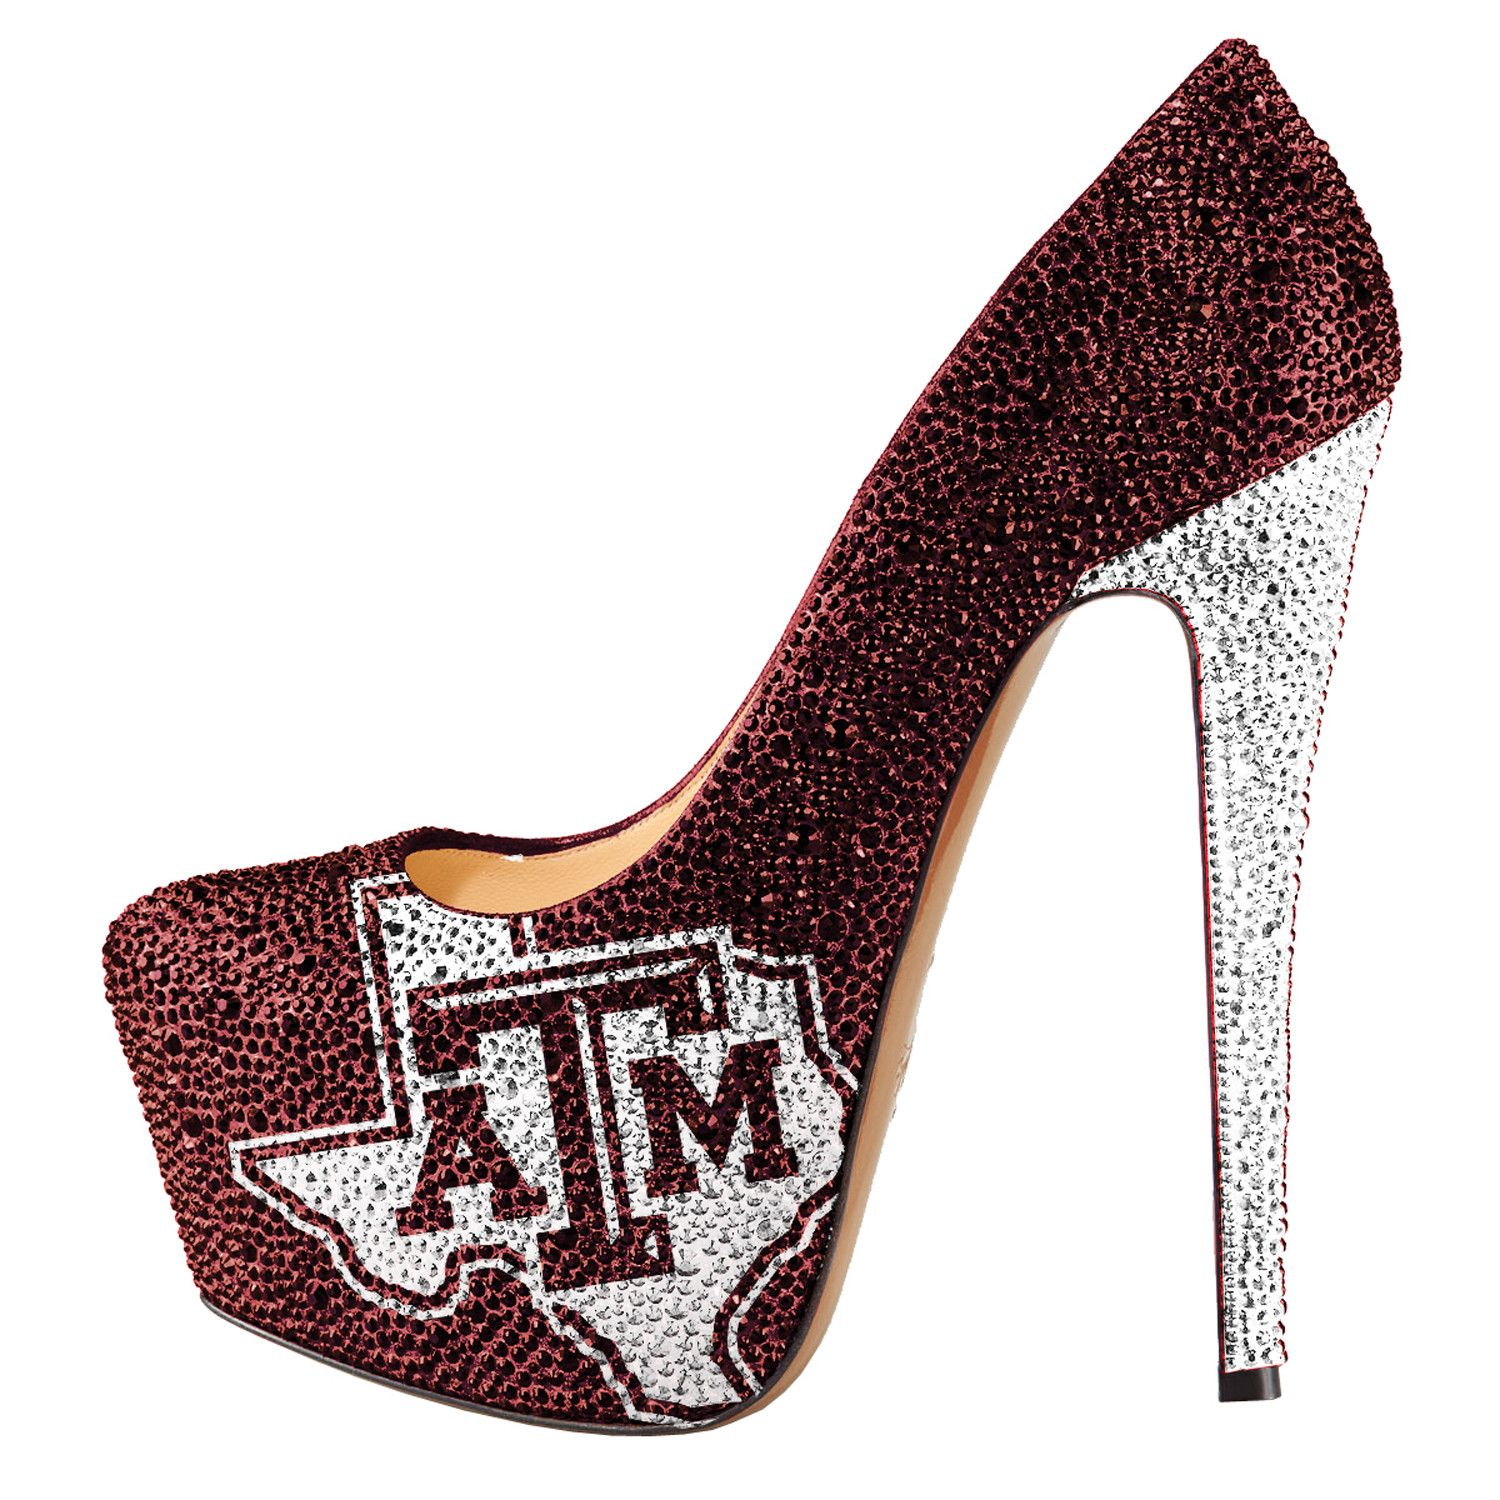 buy cheap amazon Women's Herstar Texas A&M ... Aggies Rhinestone Pump High Heels buy cheap with credit card cheap visit new clearance best place outlet fashion Style b0Jw3